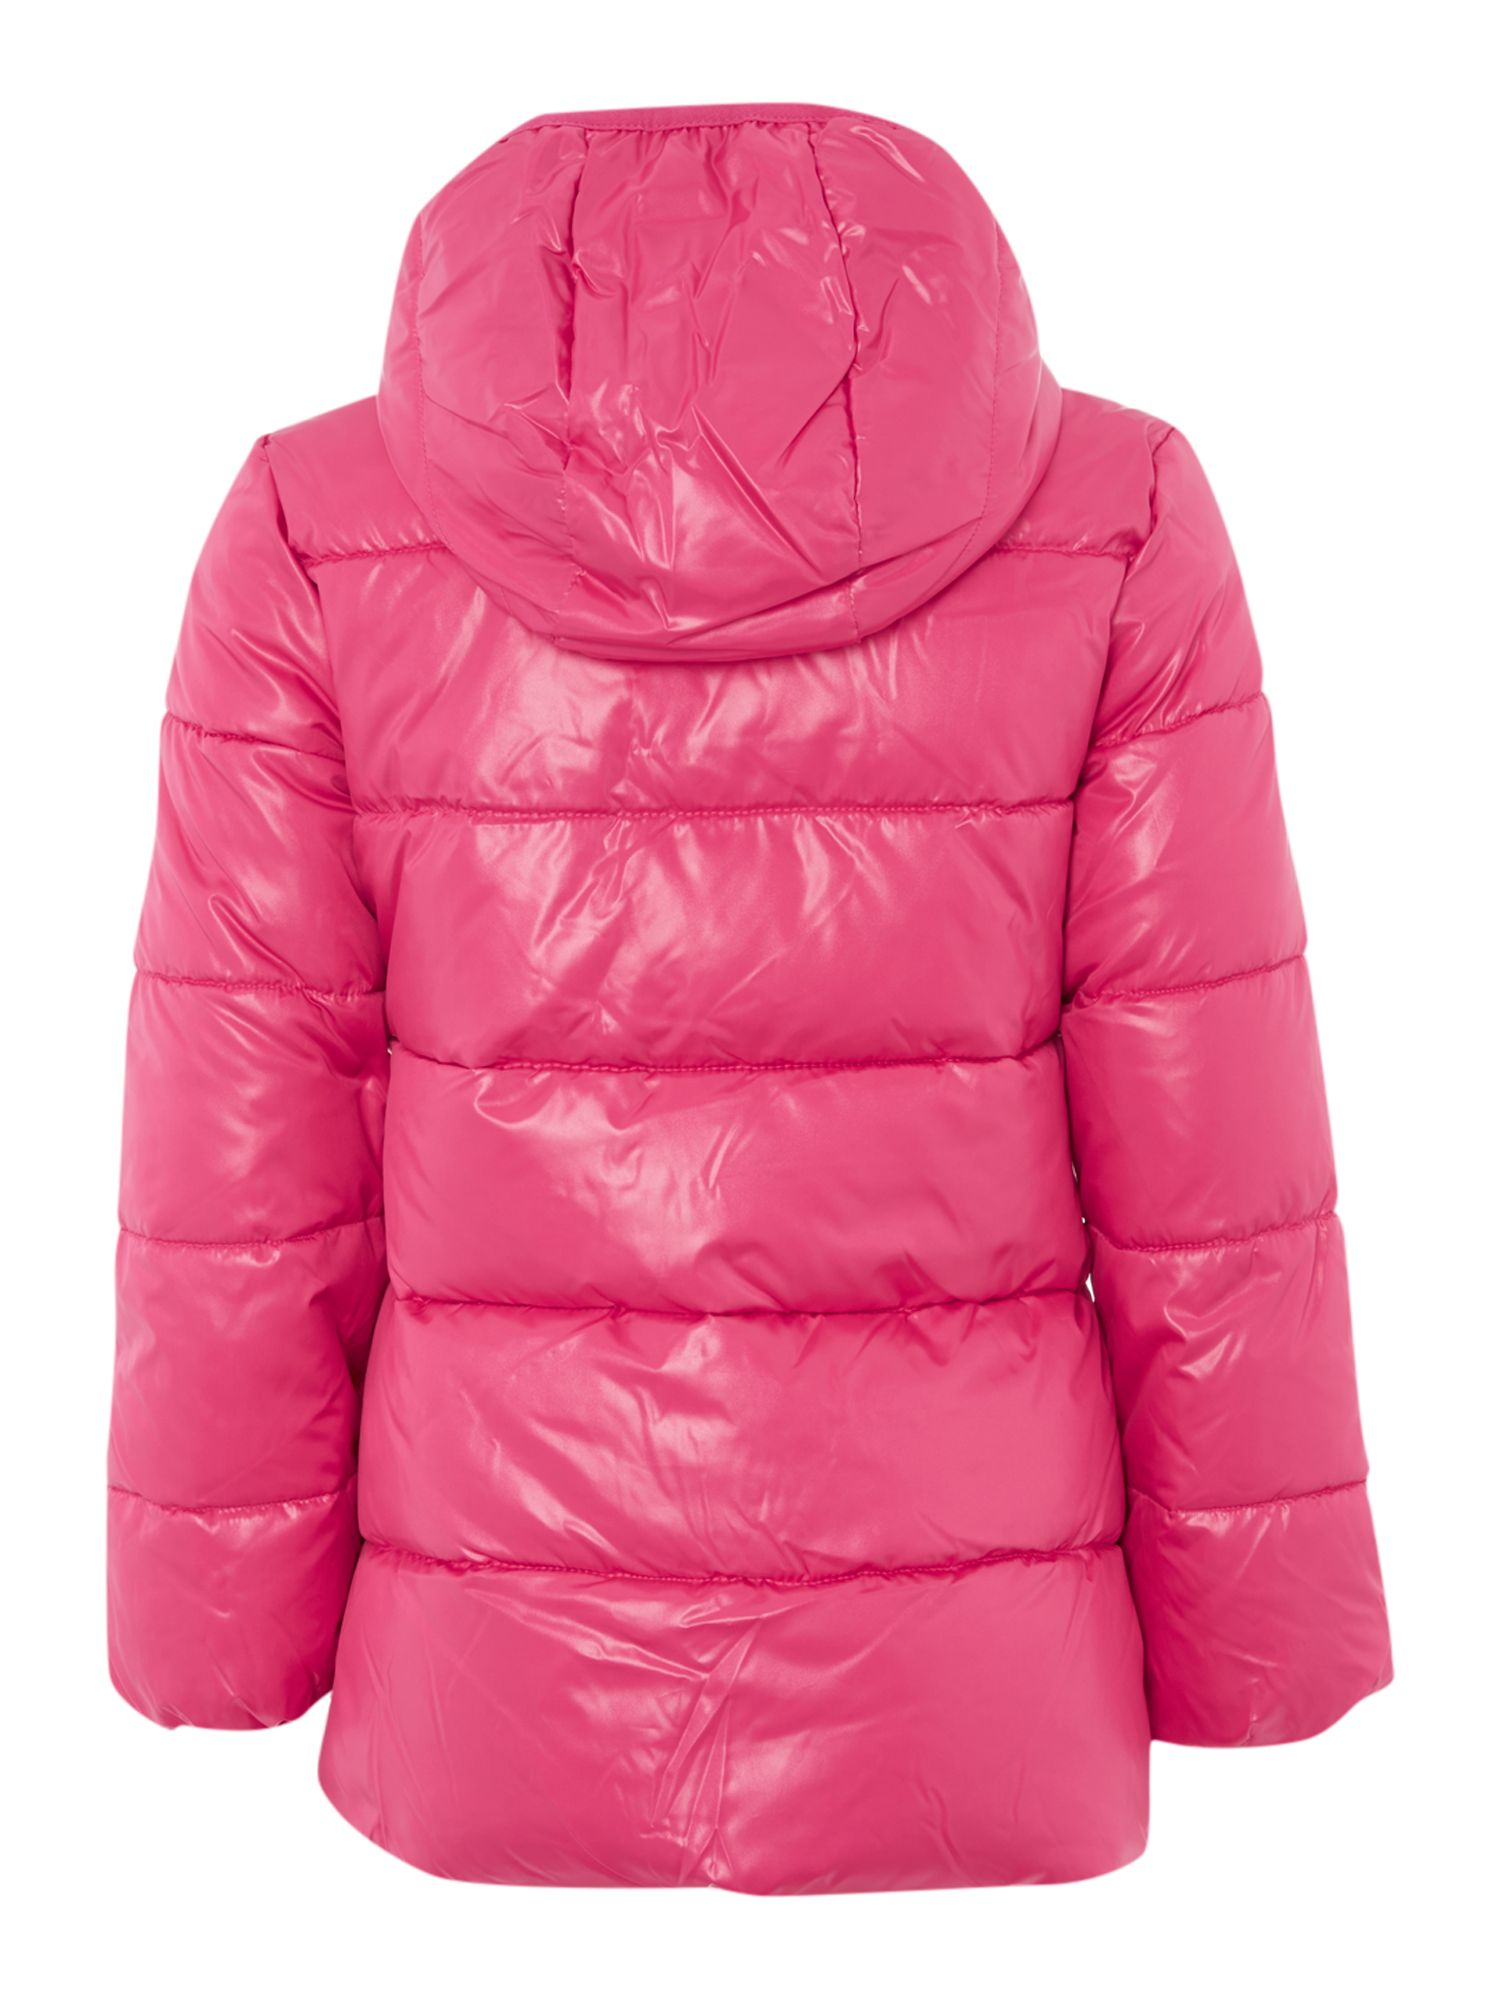 Girls padded jacket with contrast colour lining